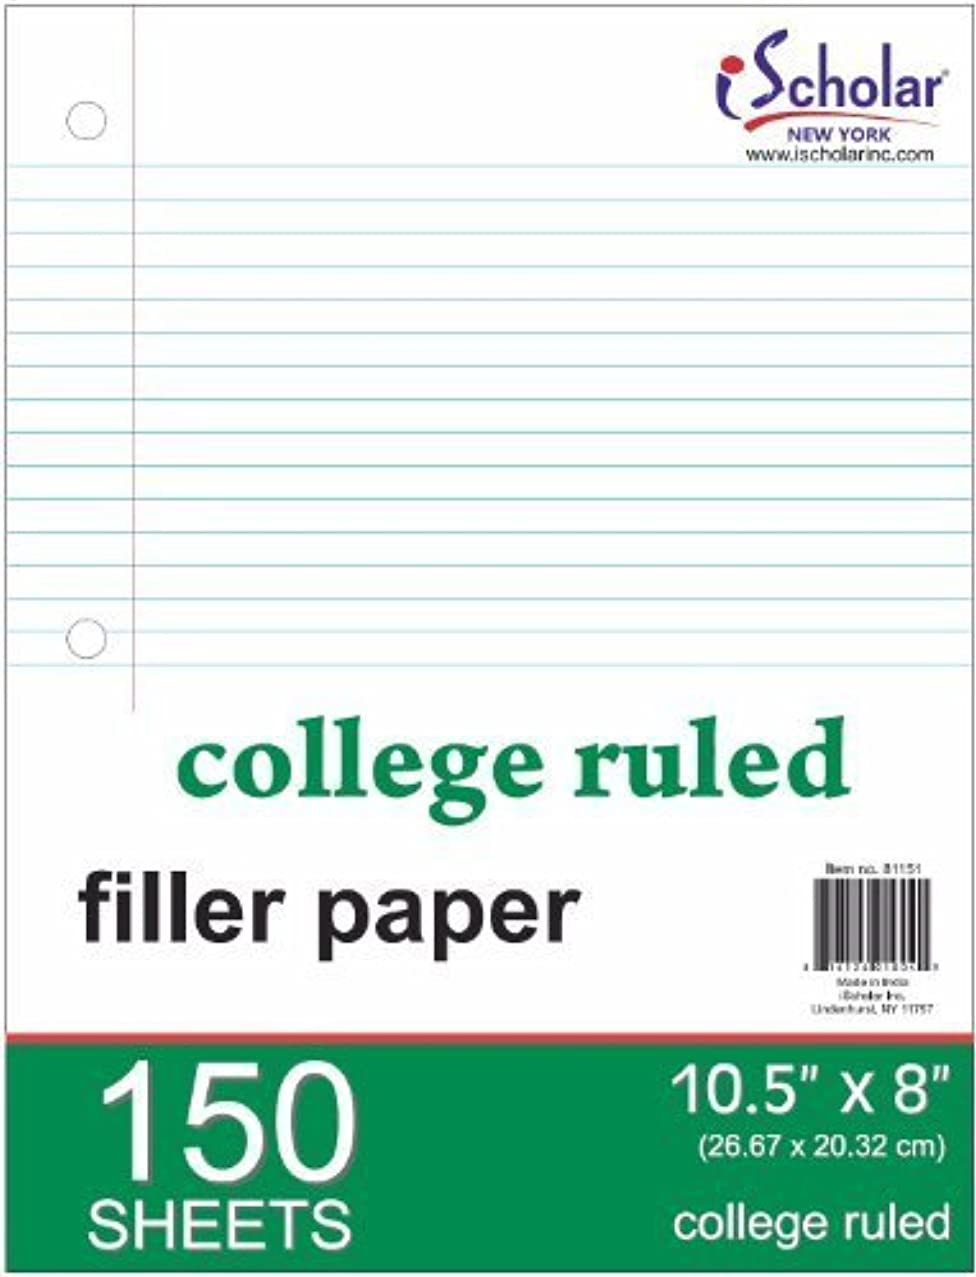 iScholar College Ruled Filler Paper, White, 10 x 8.5-Inches, 150 Sheets per Pack (81151) by Ischolar Inc.